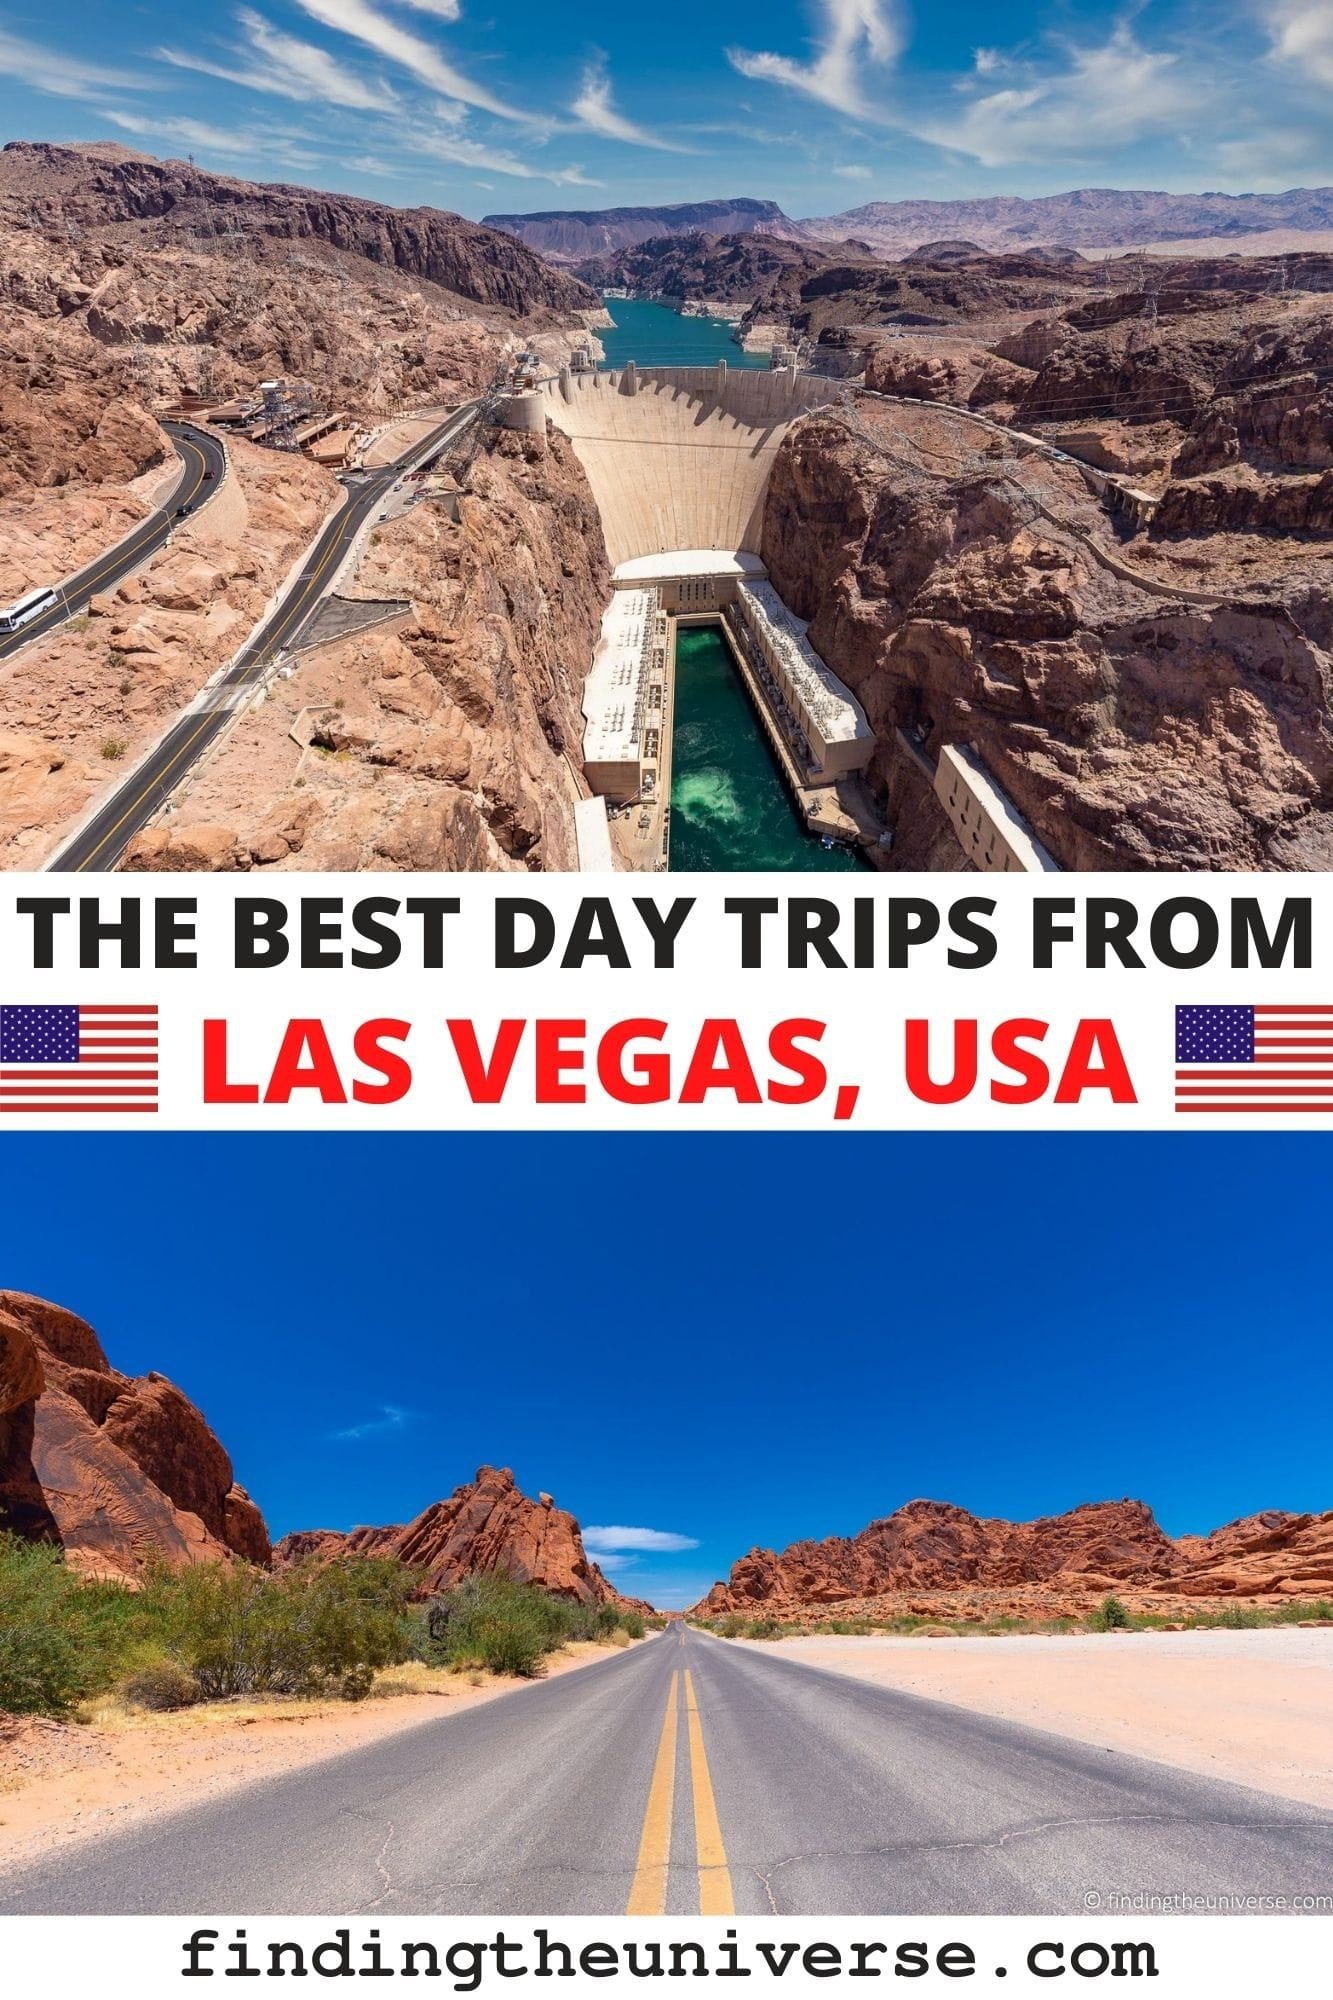 Guide to the best day trips from Las Vegas. Everything you need to plan a day out from Las Vegas, from the Hoover Dam to the Grand Canyon!